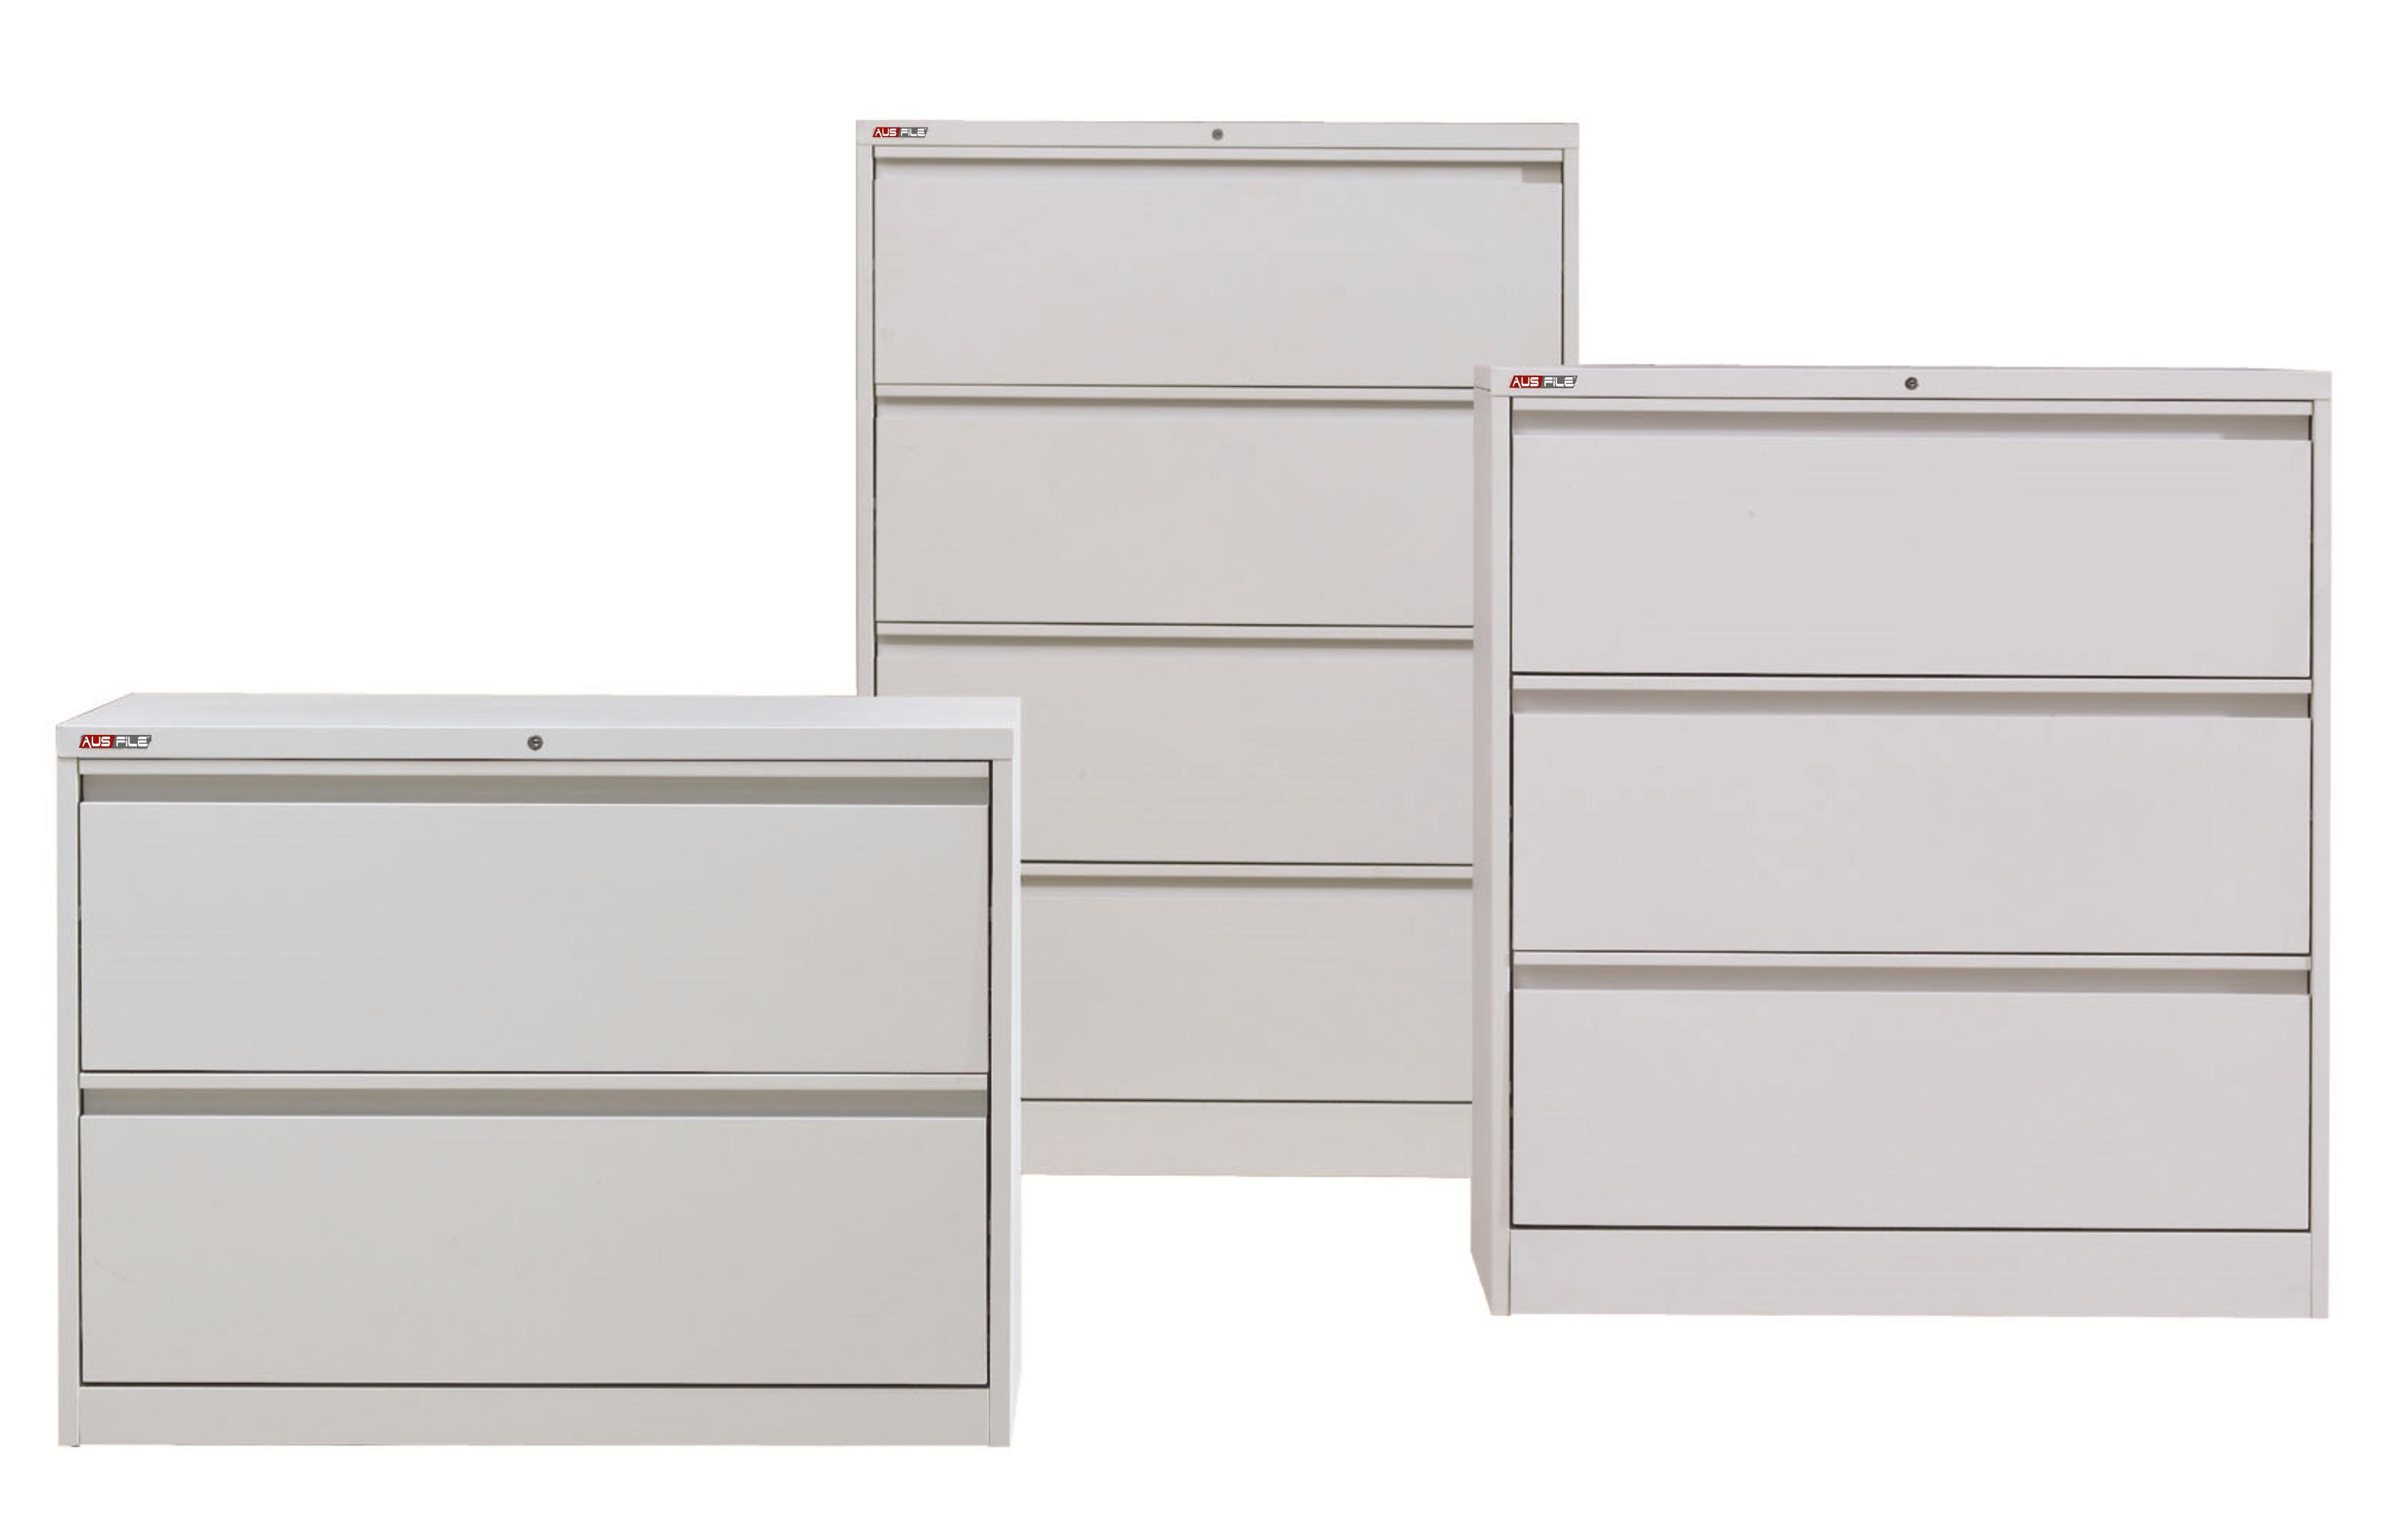 Ausfile Lateral Filing Cabinets